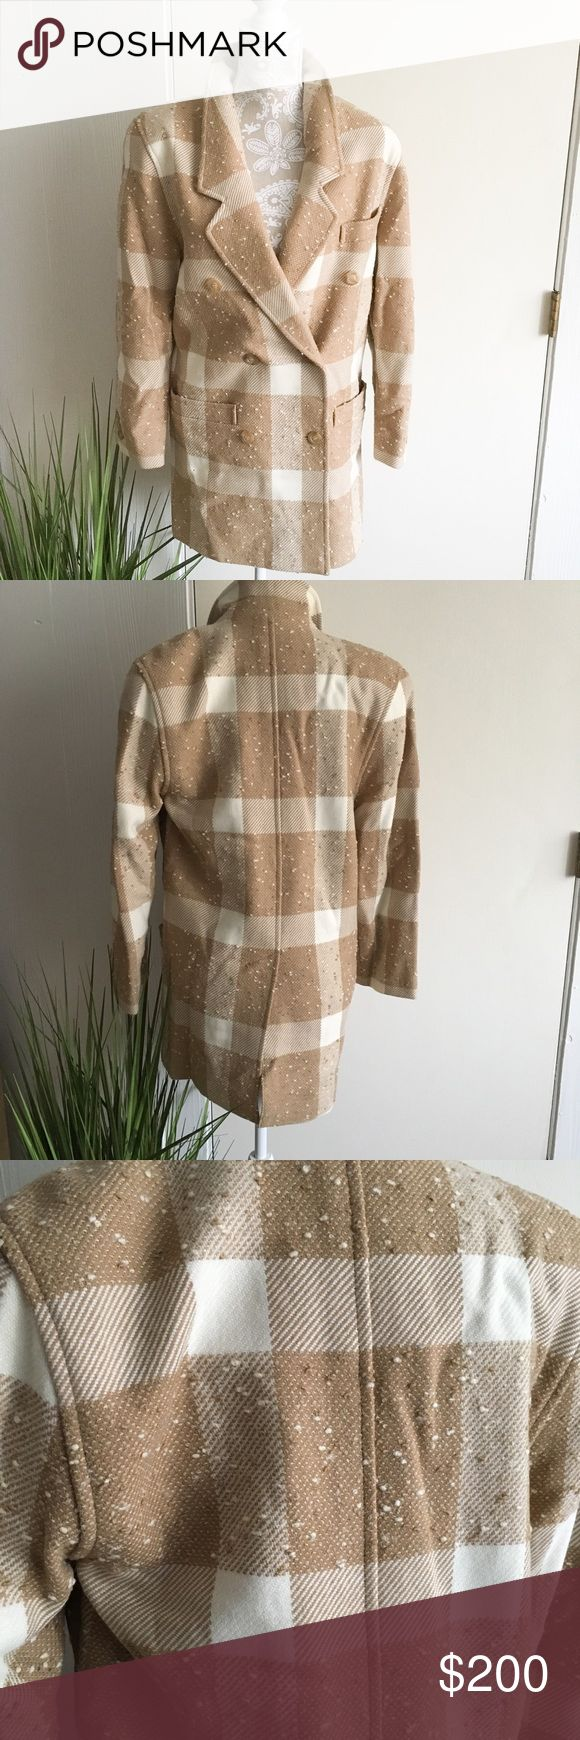 """Escada Neiman Marcus Vintage Wool Jacket *Vintage, long wool jacket, tan and off white plaid print, no major signs of wear. Tag says 34/converts to US 4/small.*  •Bust:20"""" •length:32"""" •sleeve:23""""                                                           📷filter used on first photo 🛍Bundle for a Discount/all sales final/no holds/no trades Escada Jackets & Coats"""